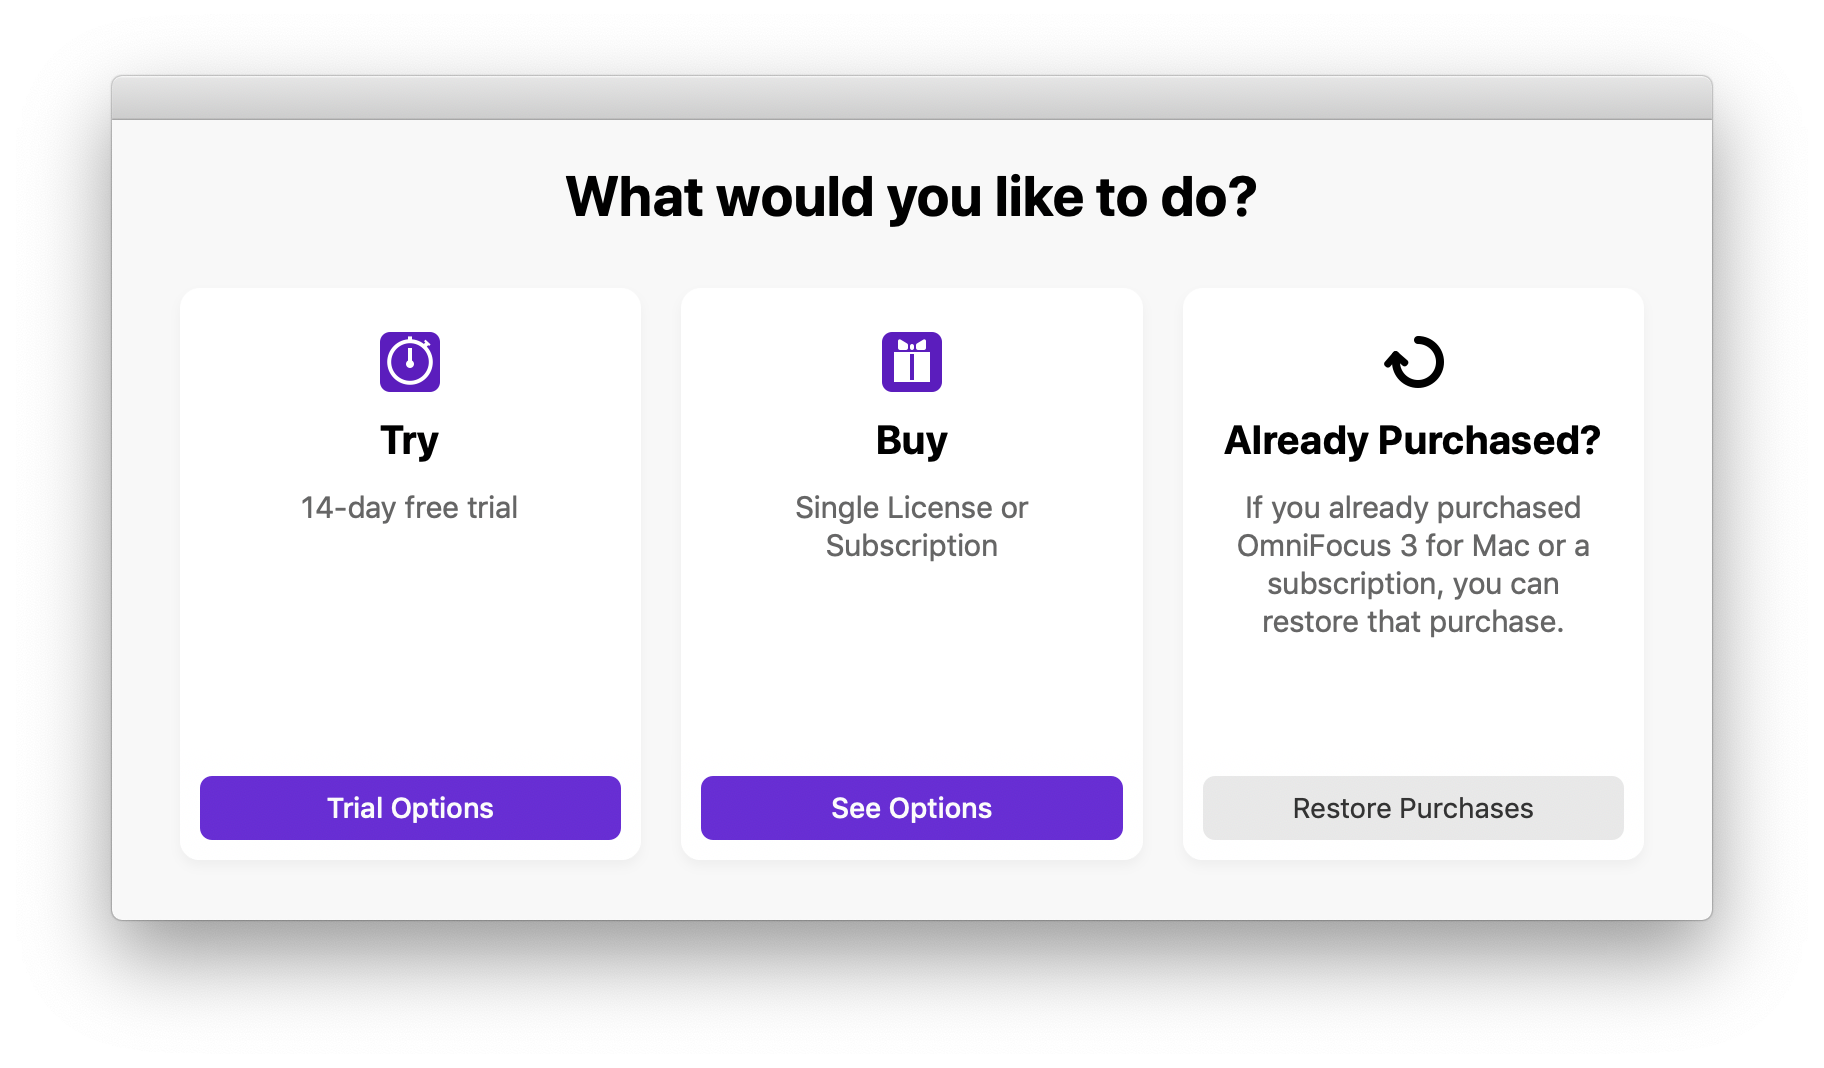 Choosing to try the app or get started with an OmniFocus Pro subscription in OmniFocus 3 for Mac.